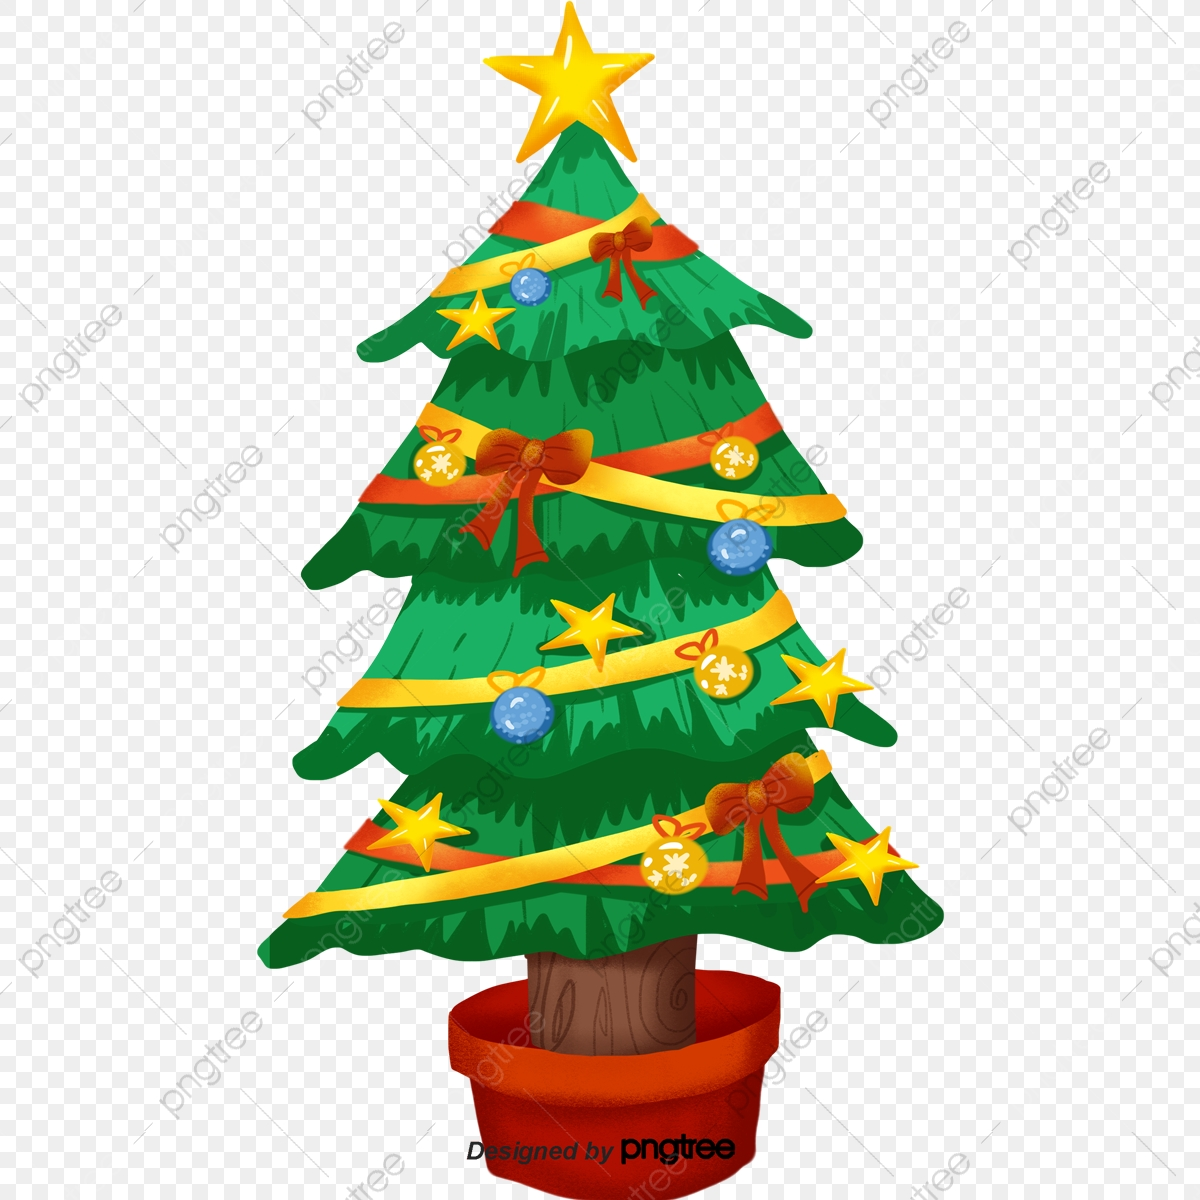 Cartoon Christmas Tree Png Images Vector And Psd Files Free Download On Pngtree